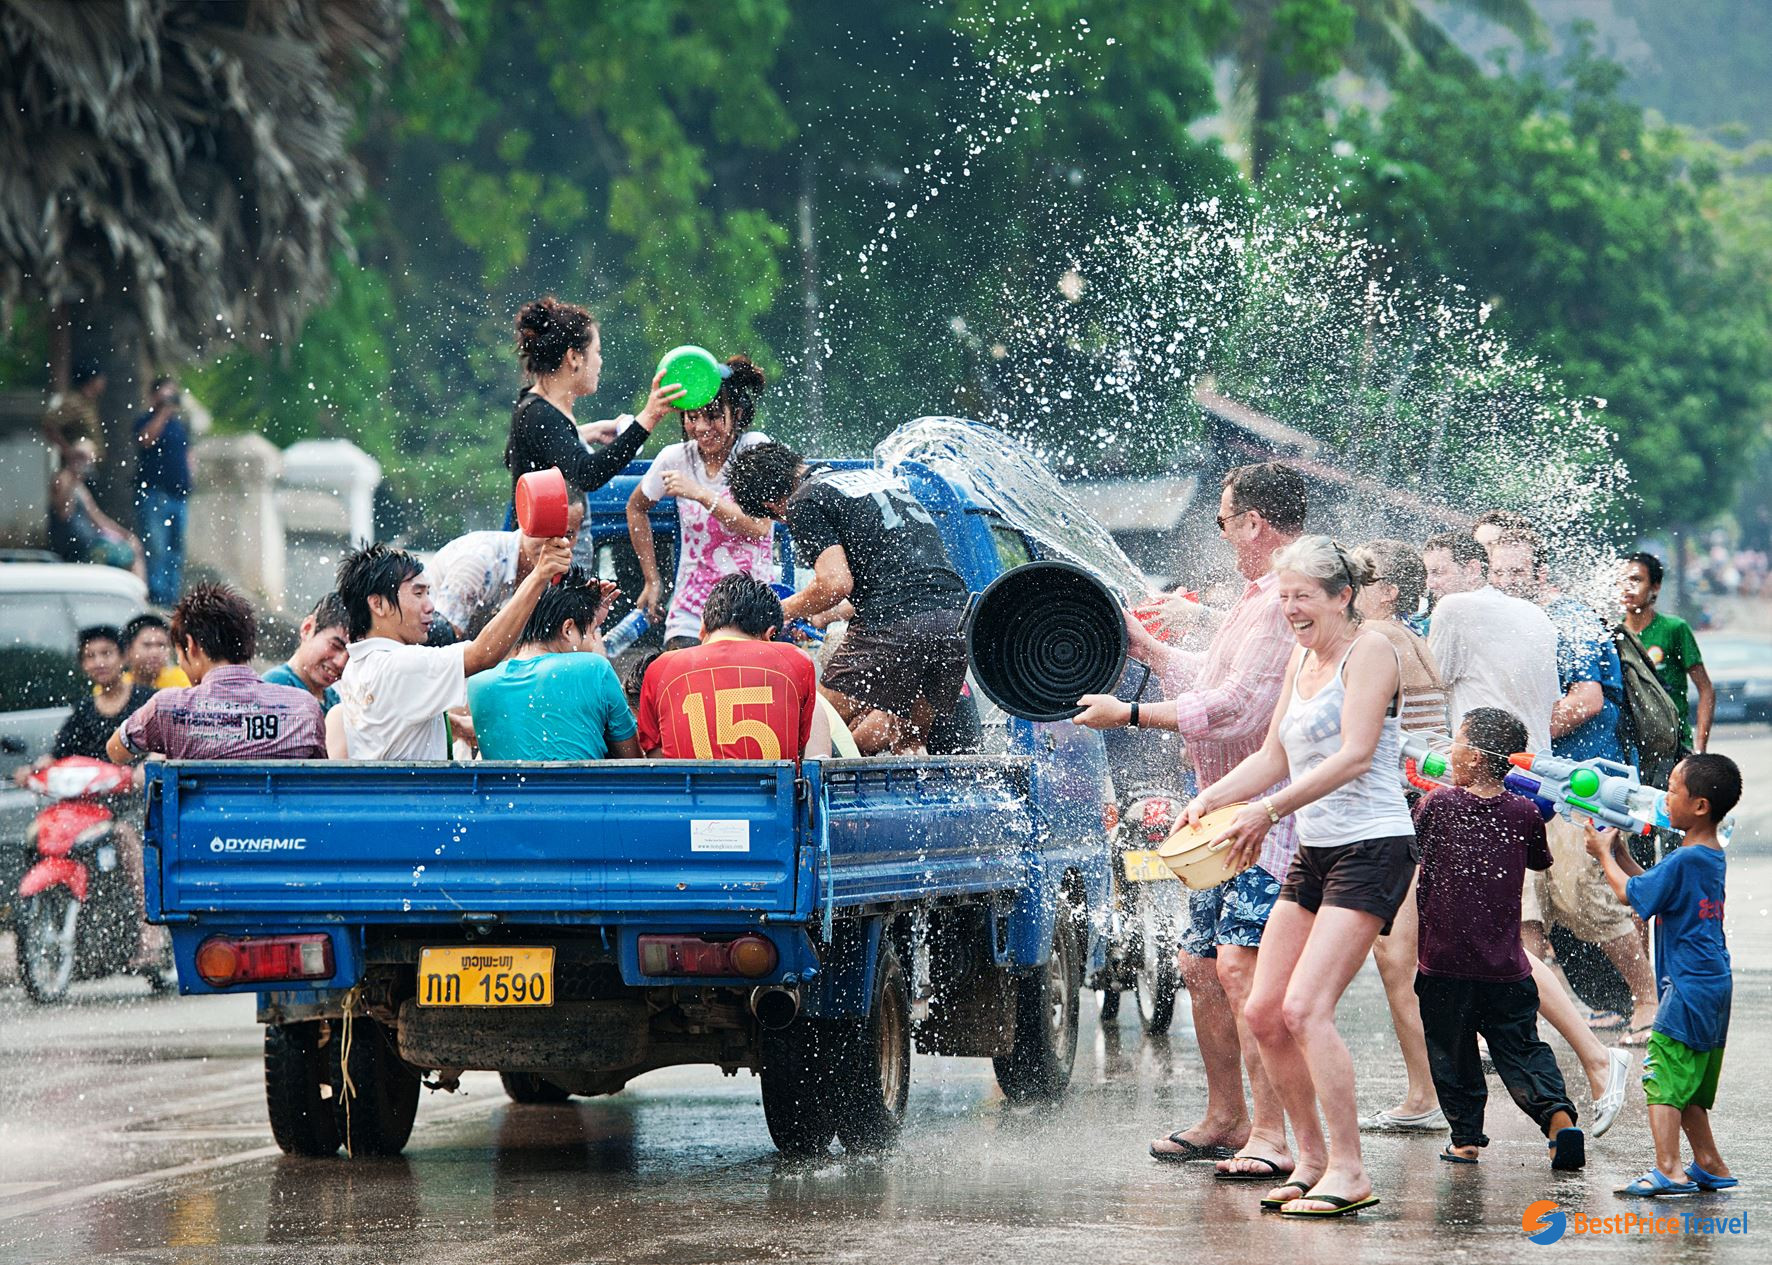 plashing water is considered as a must-do activities giving good luck in Boun Pi Mai